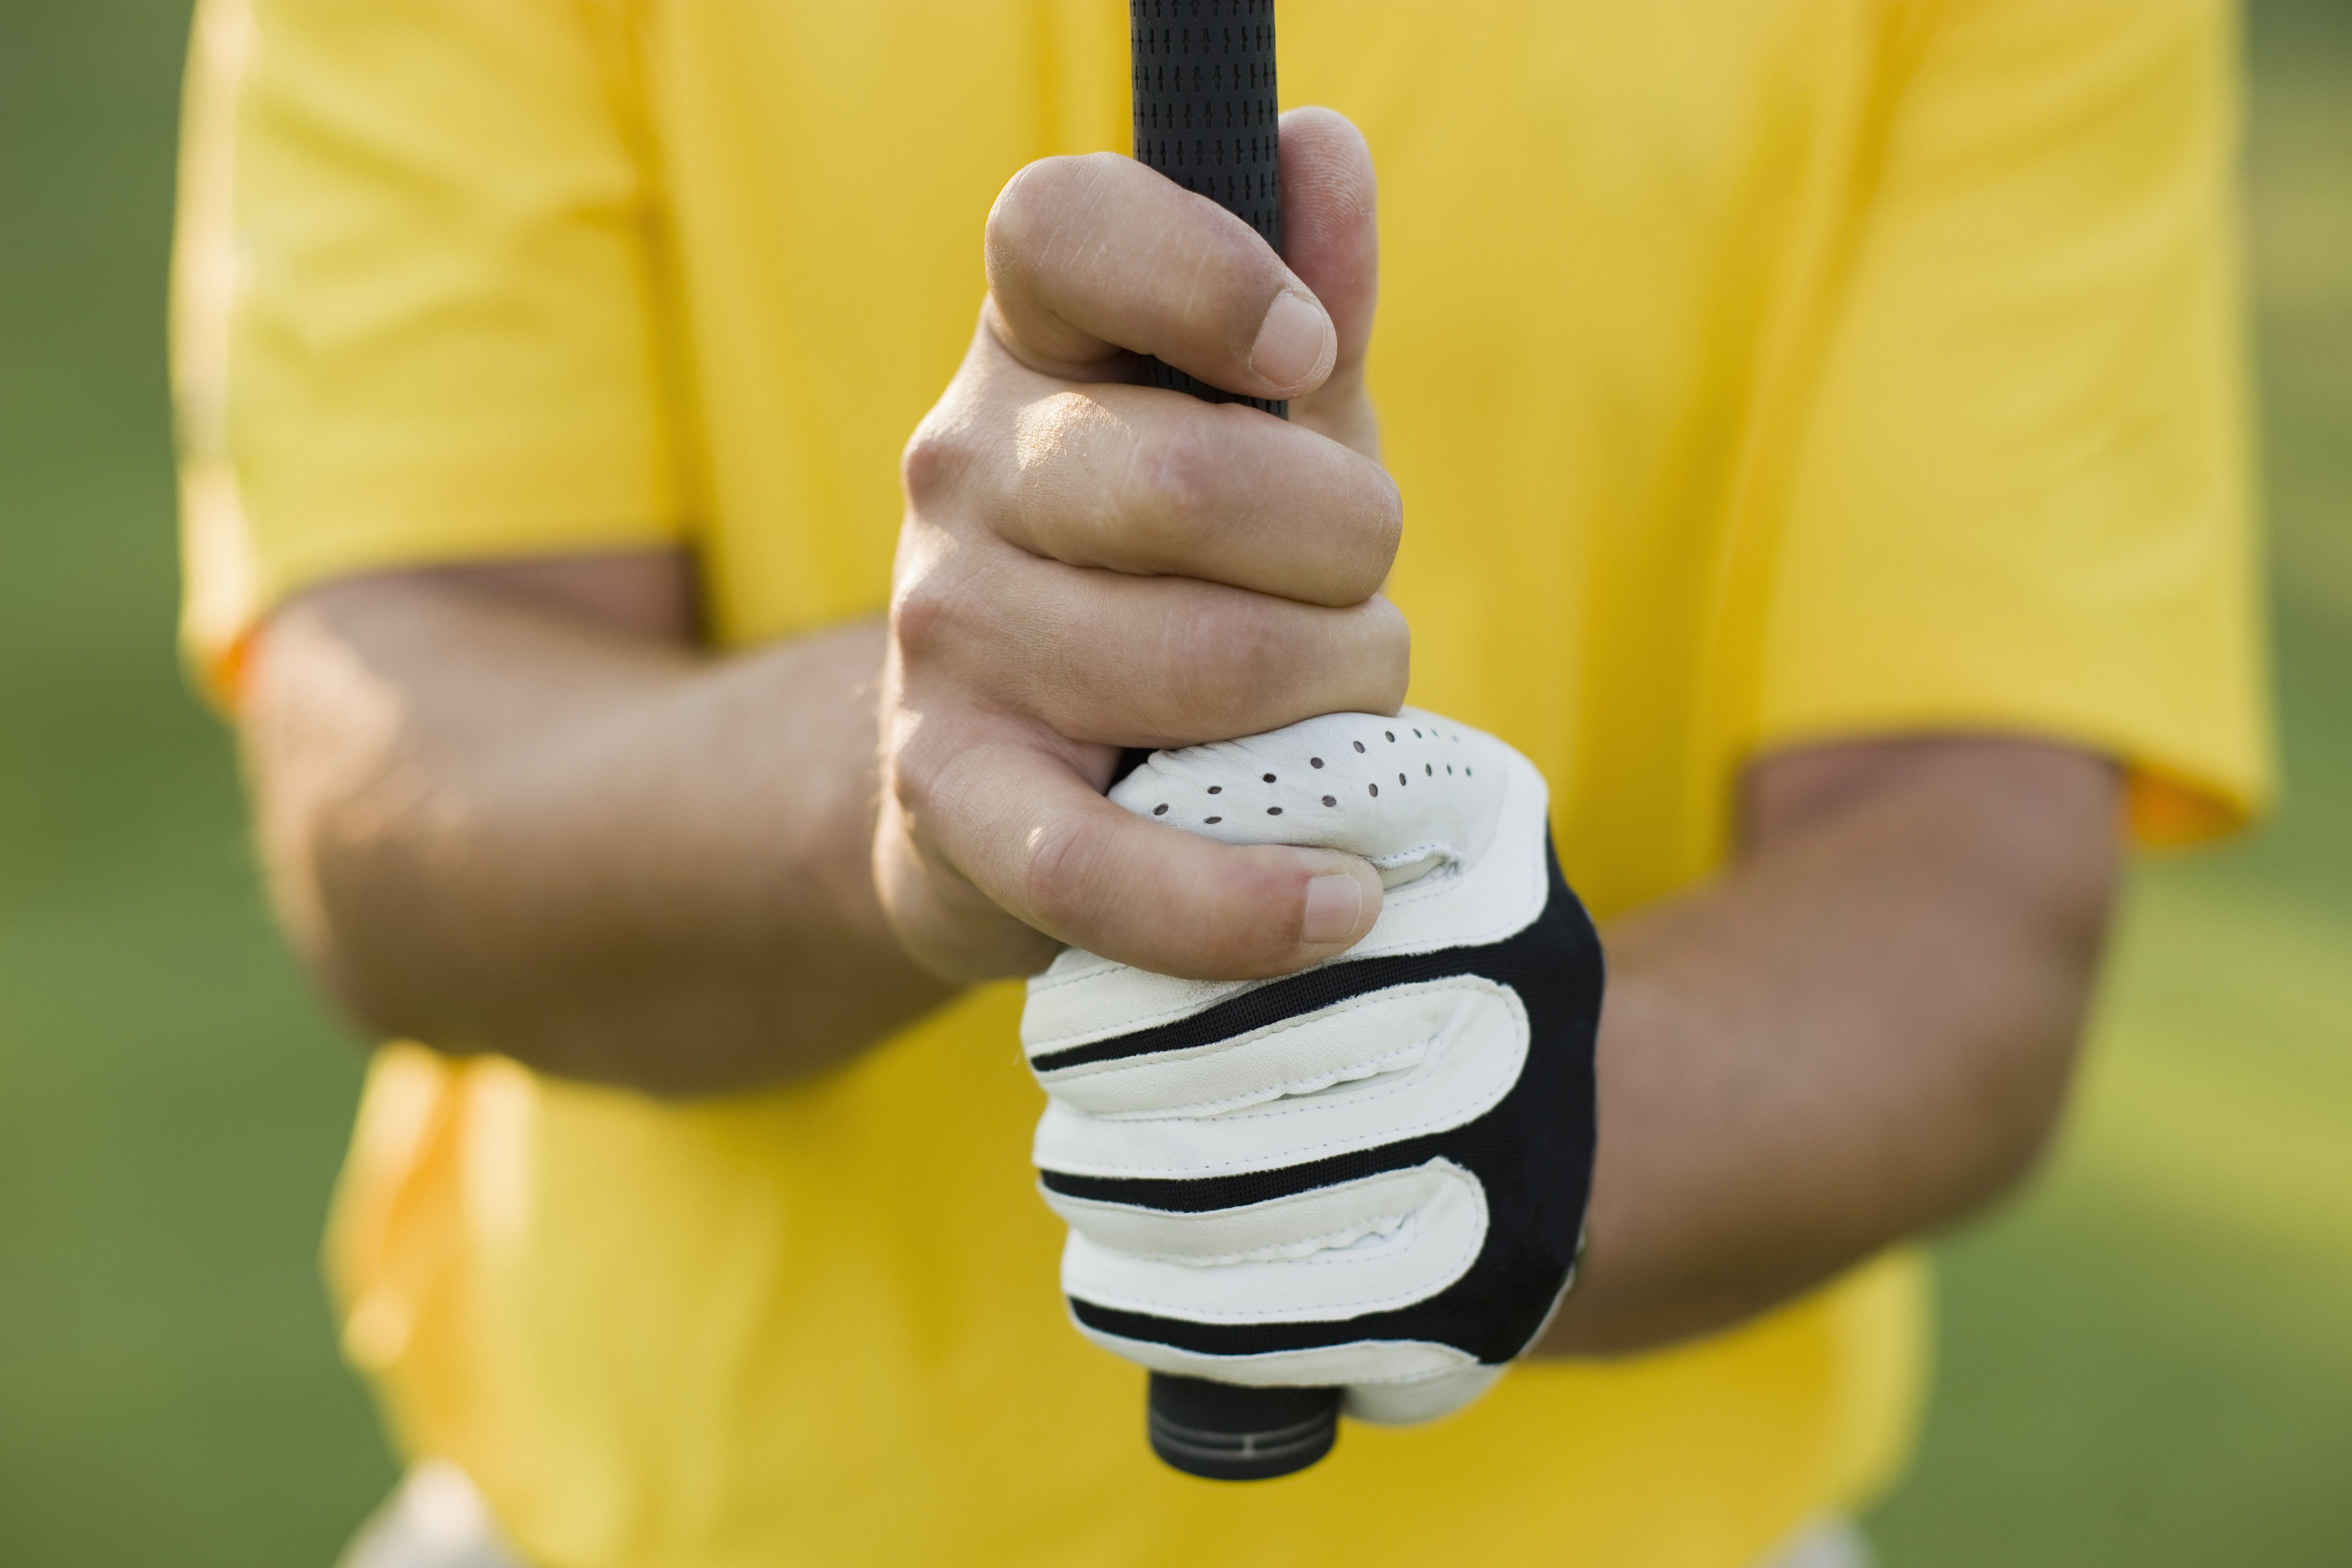 Different Golf Grips - Best Ways to Hold the Golf Club